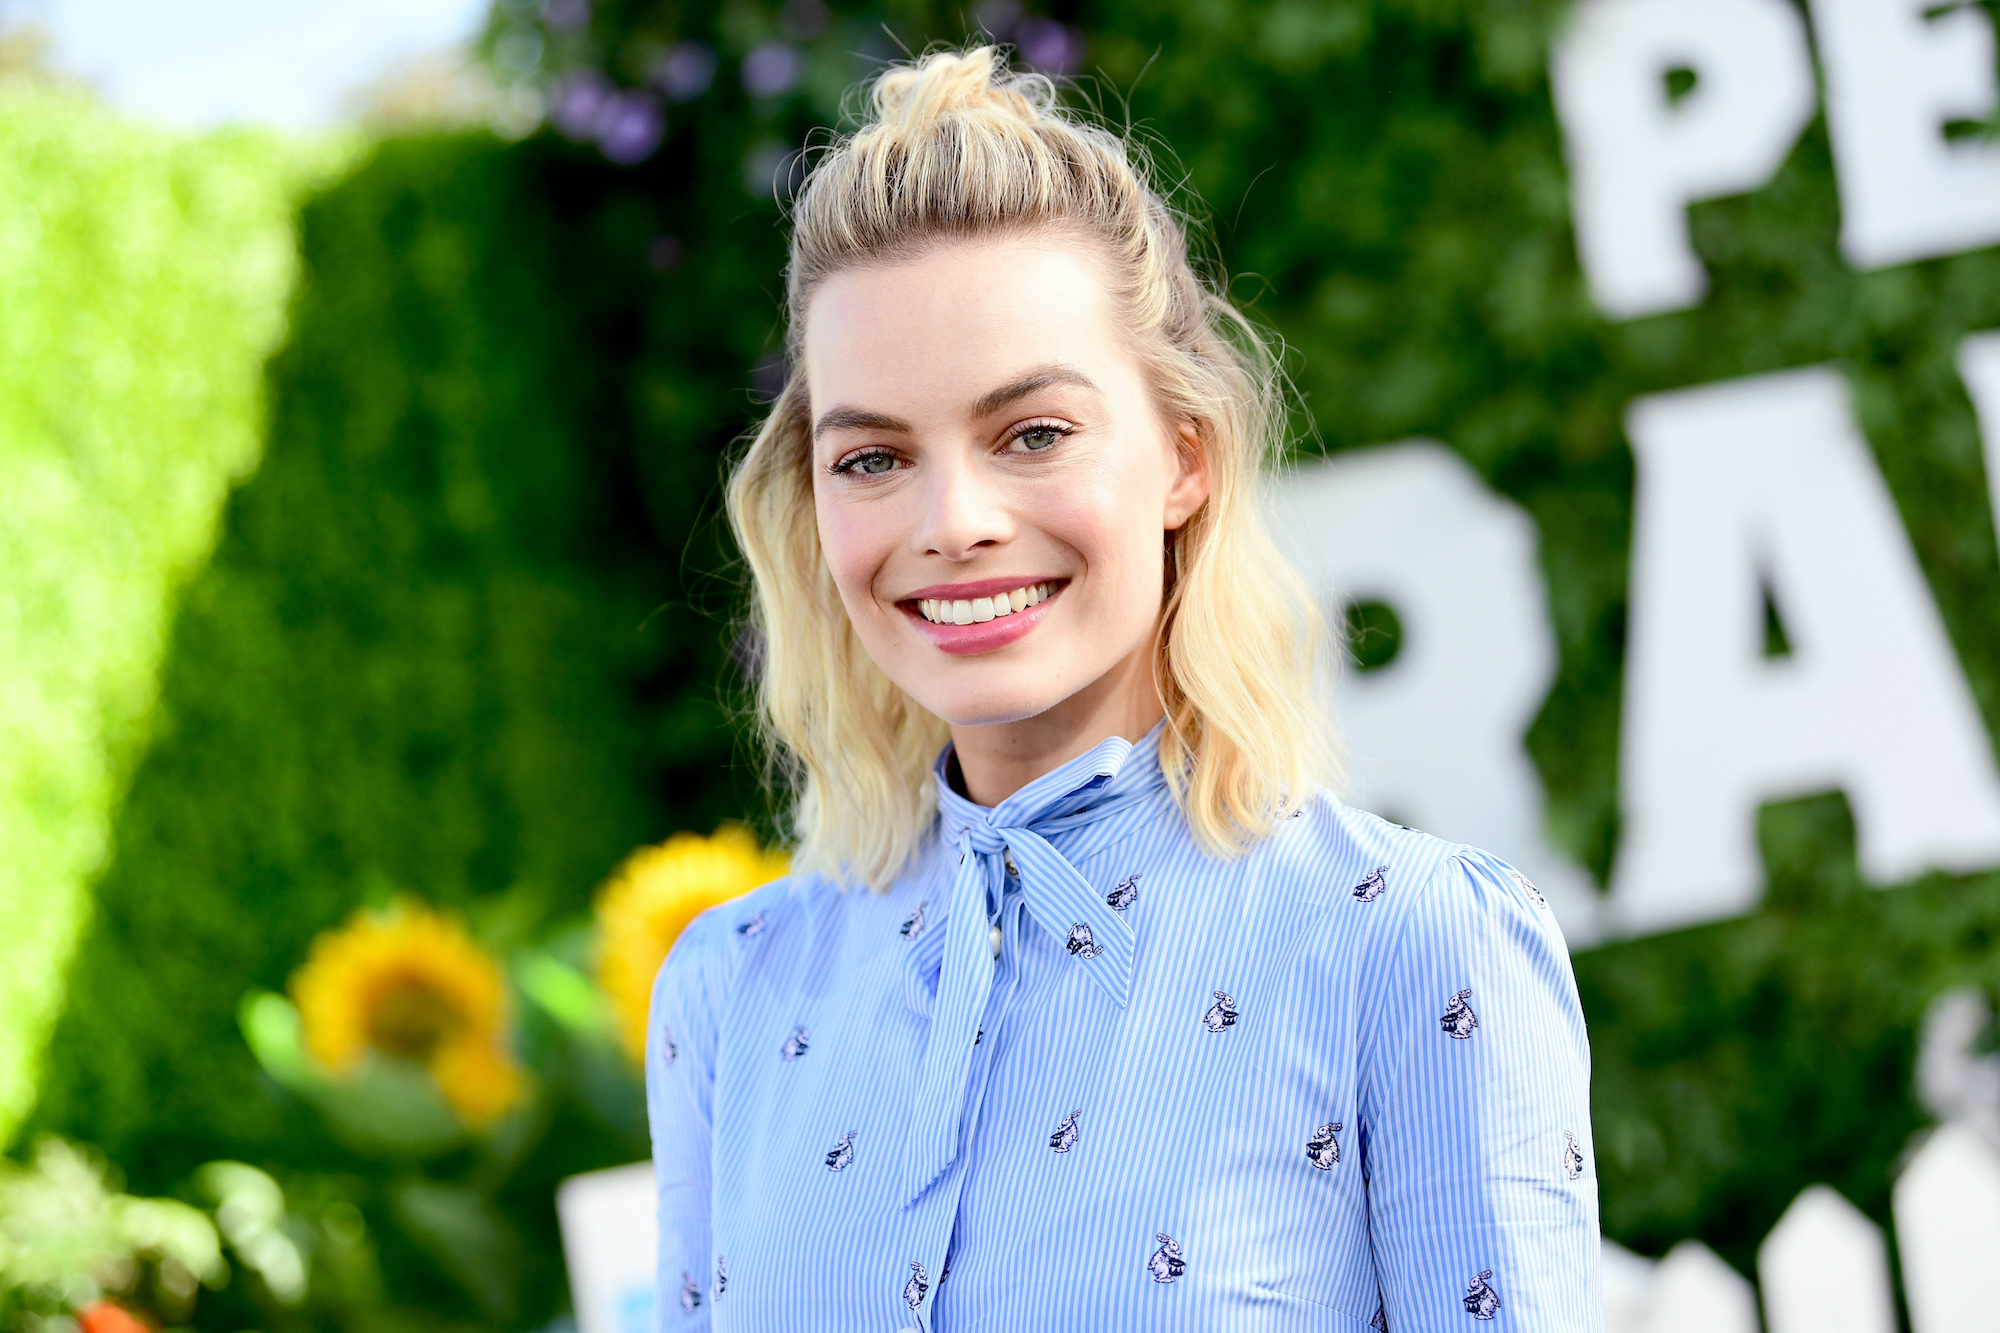 Margot Robbie attends the photo call for Columbia Pictures' 'Peter Rabbit' at The London Hotel on February 2, 2018